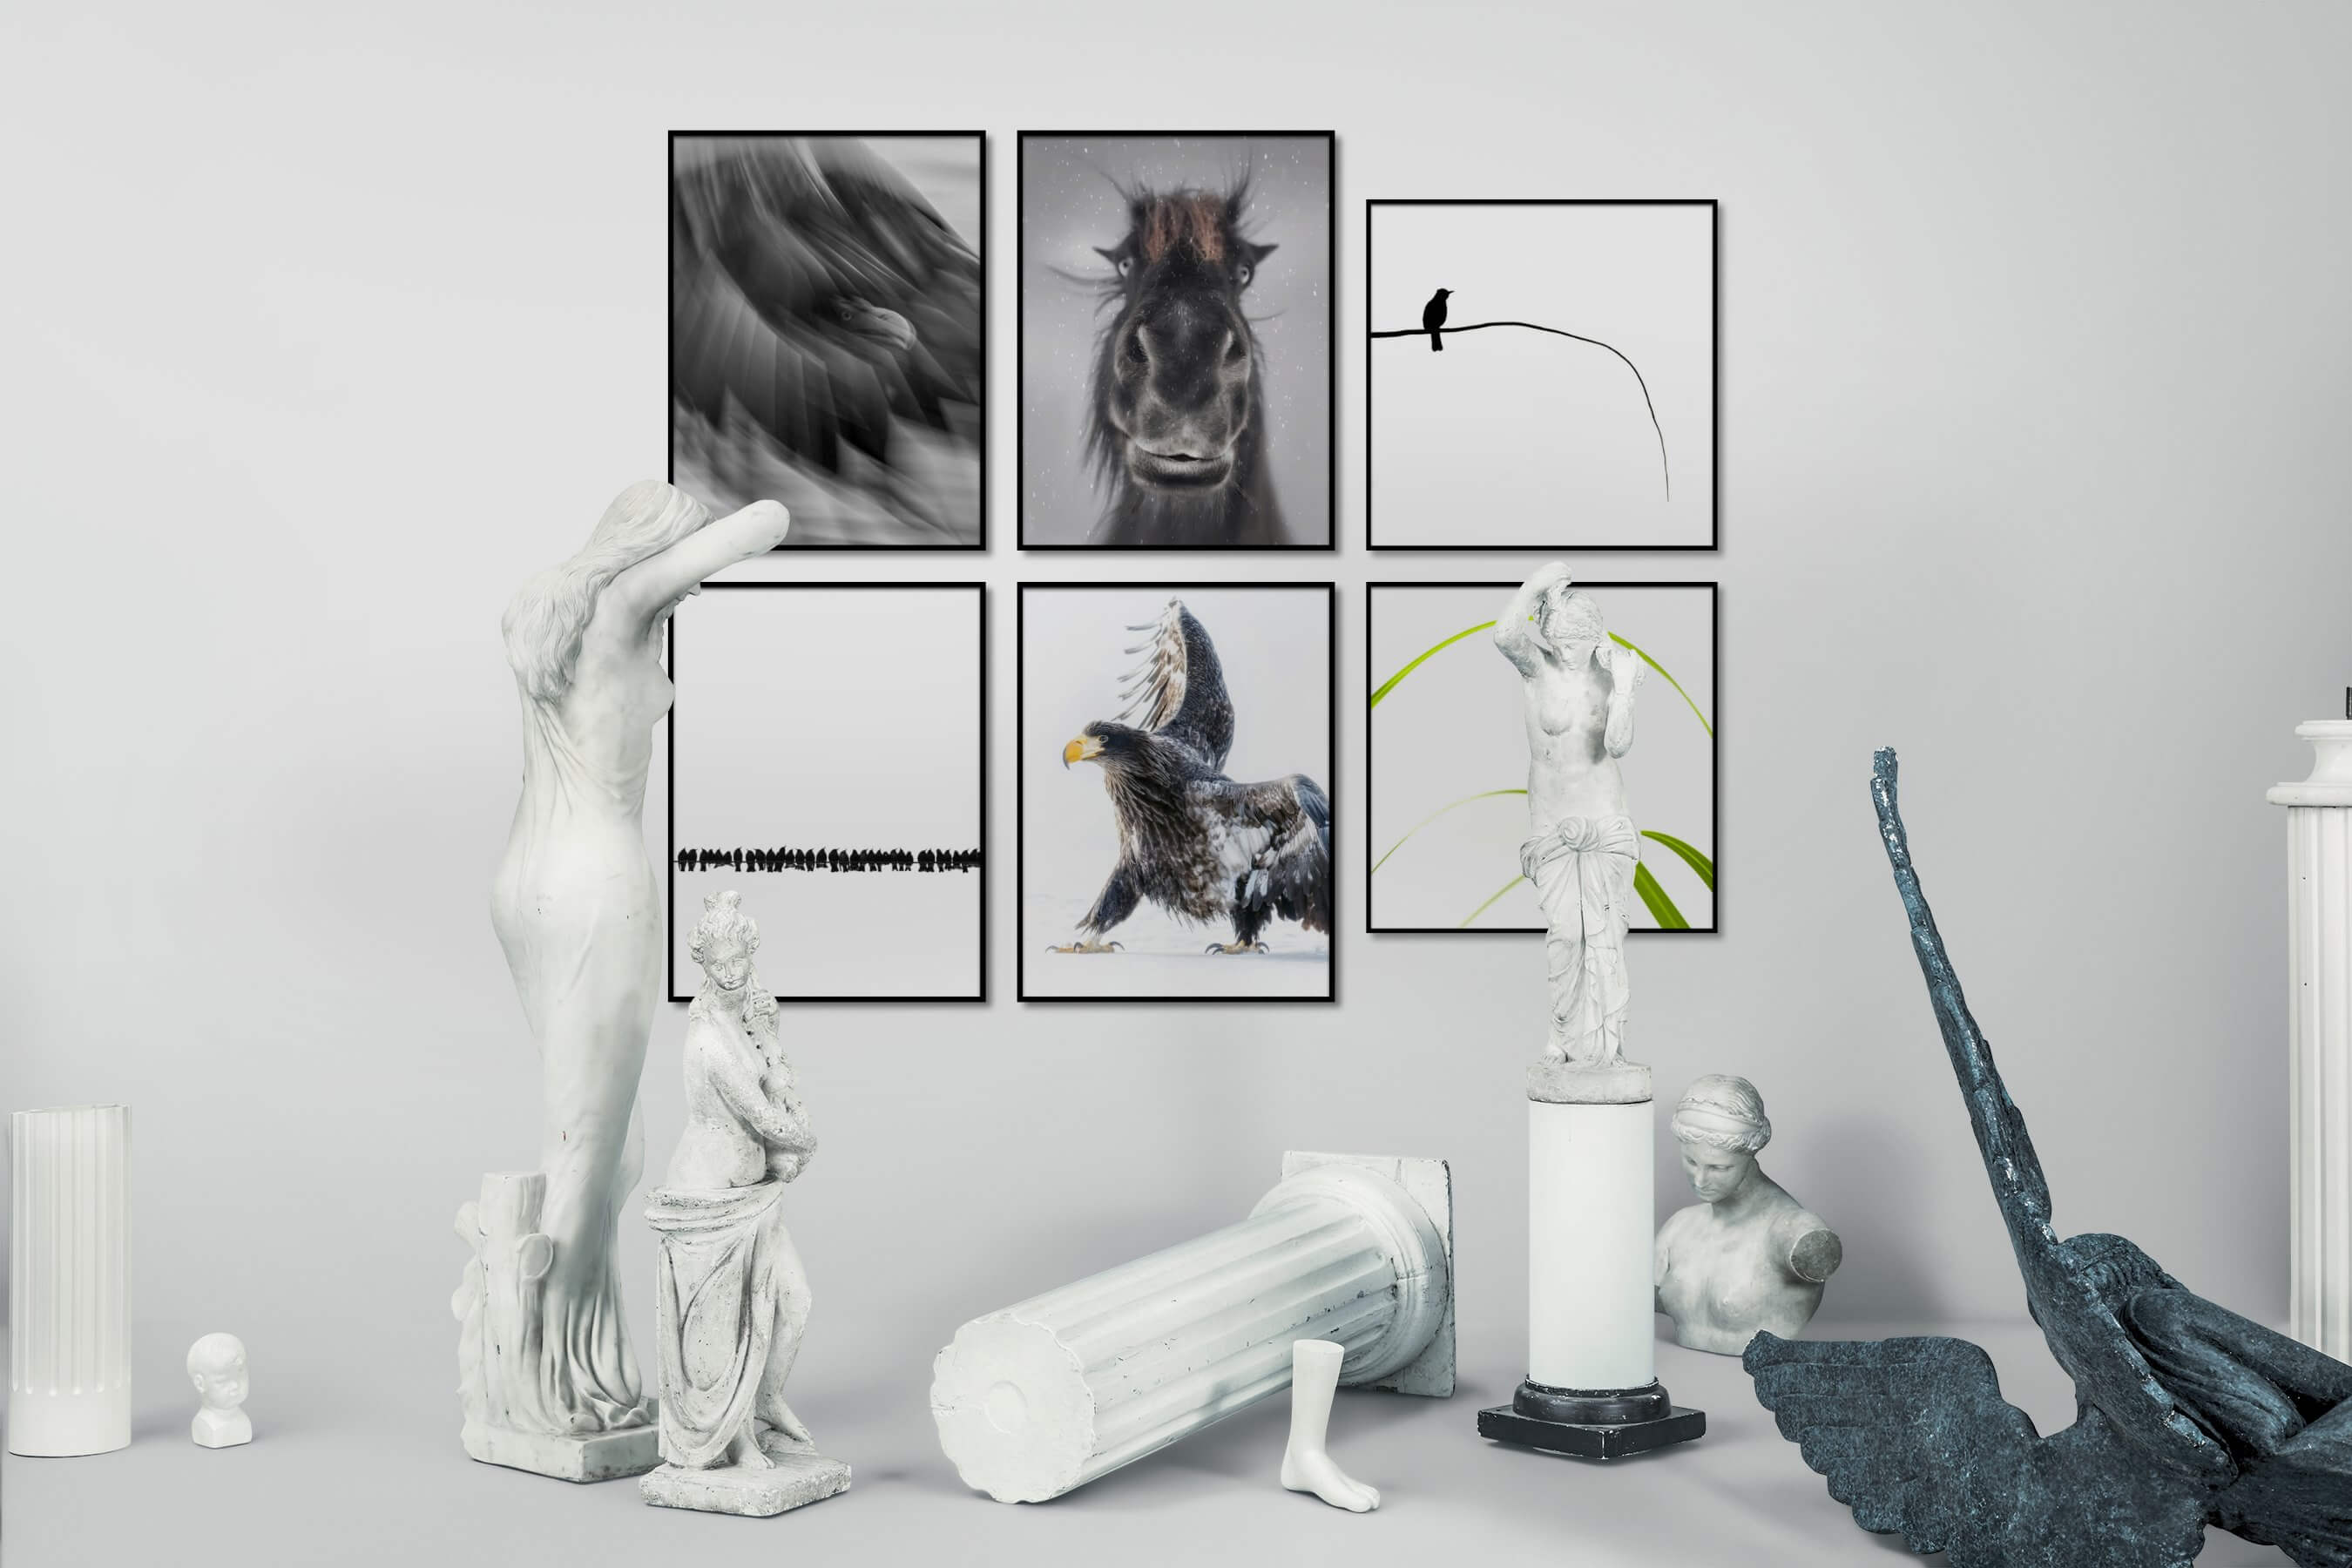 Gallery wall idea with six framed pictures arranged on a wall depicting Black & White, Animals, Bright Tones, For the Minimalist, Flowers & Plants, and Mindfulness